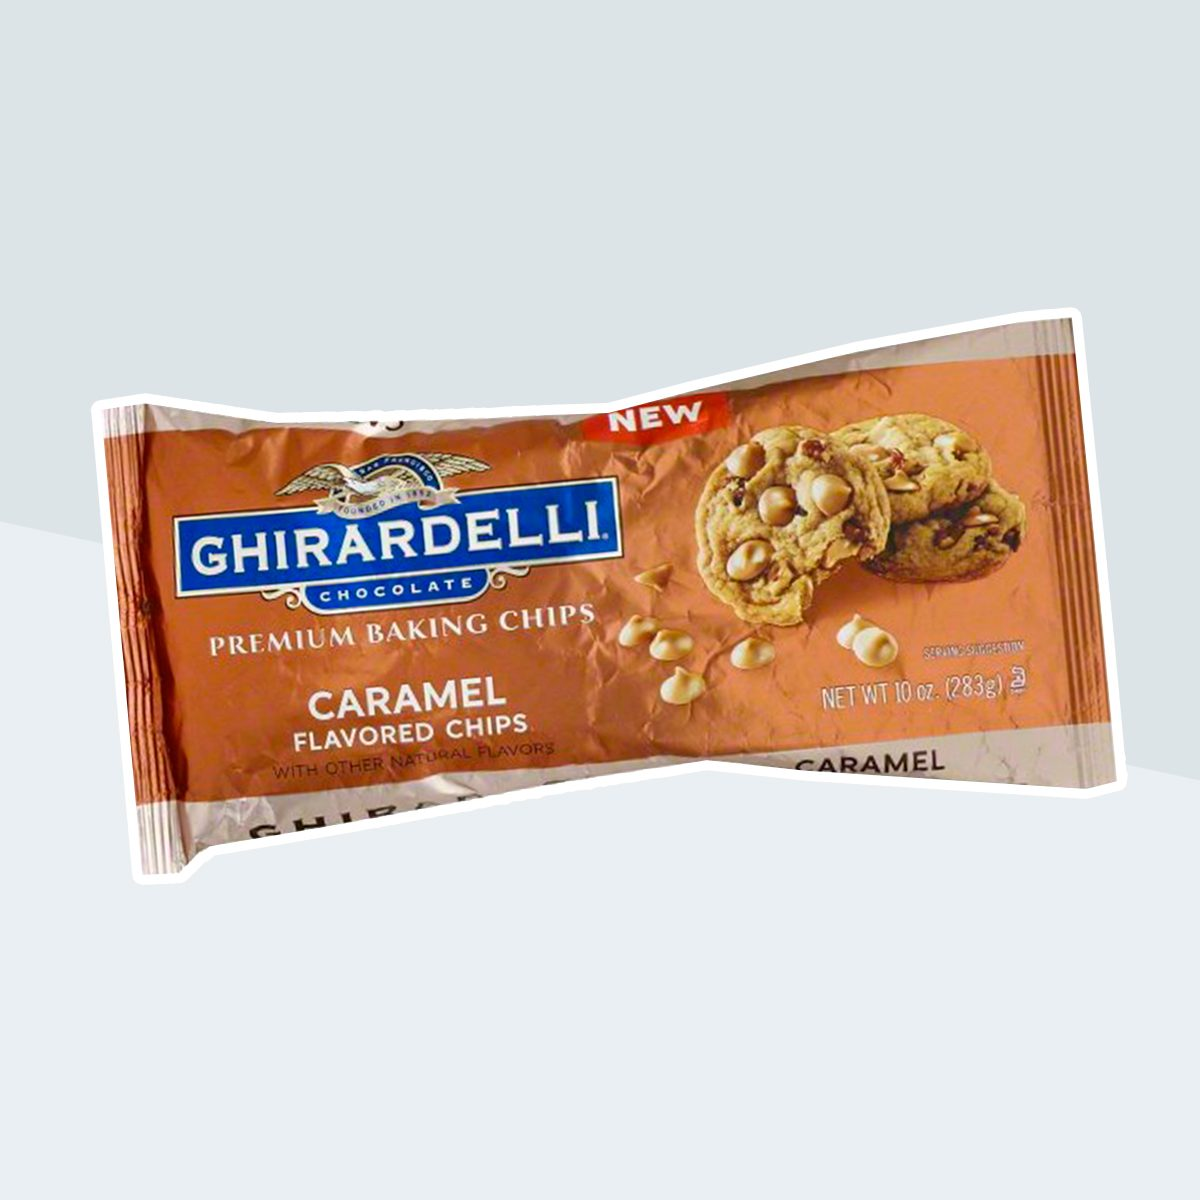 Ghirardelli Caramel-Flavored Chips